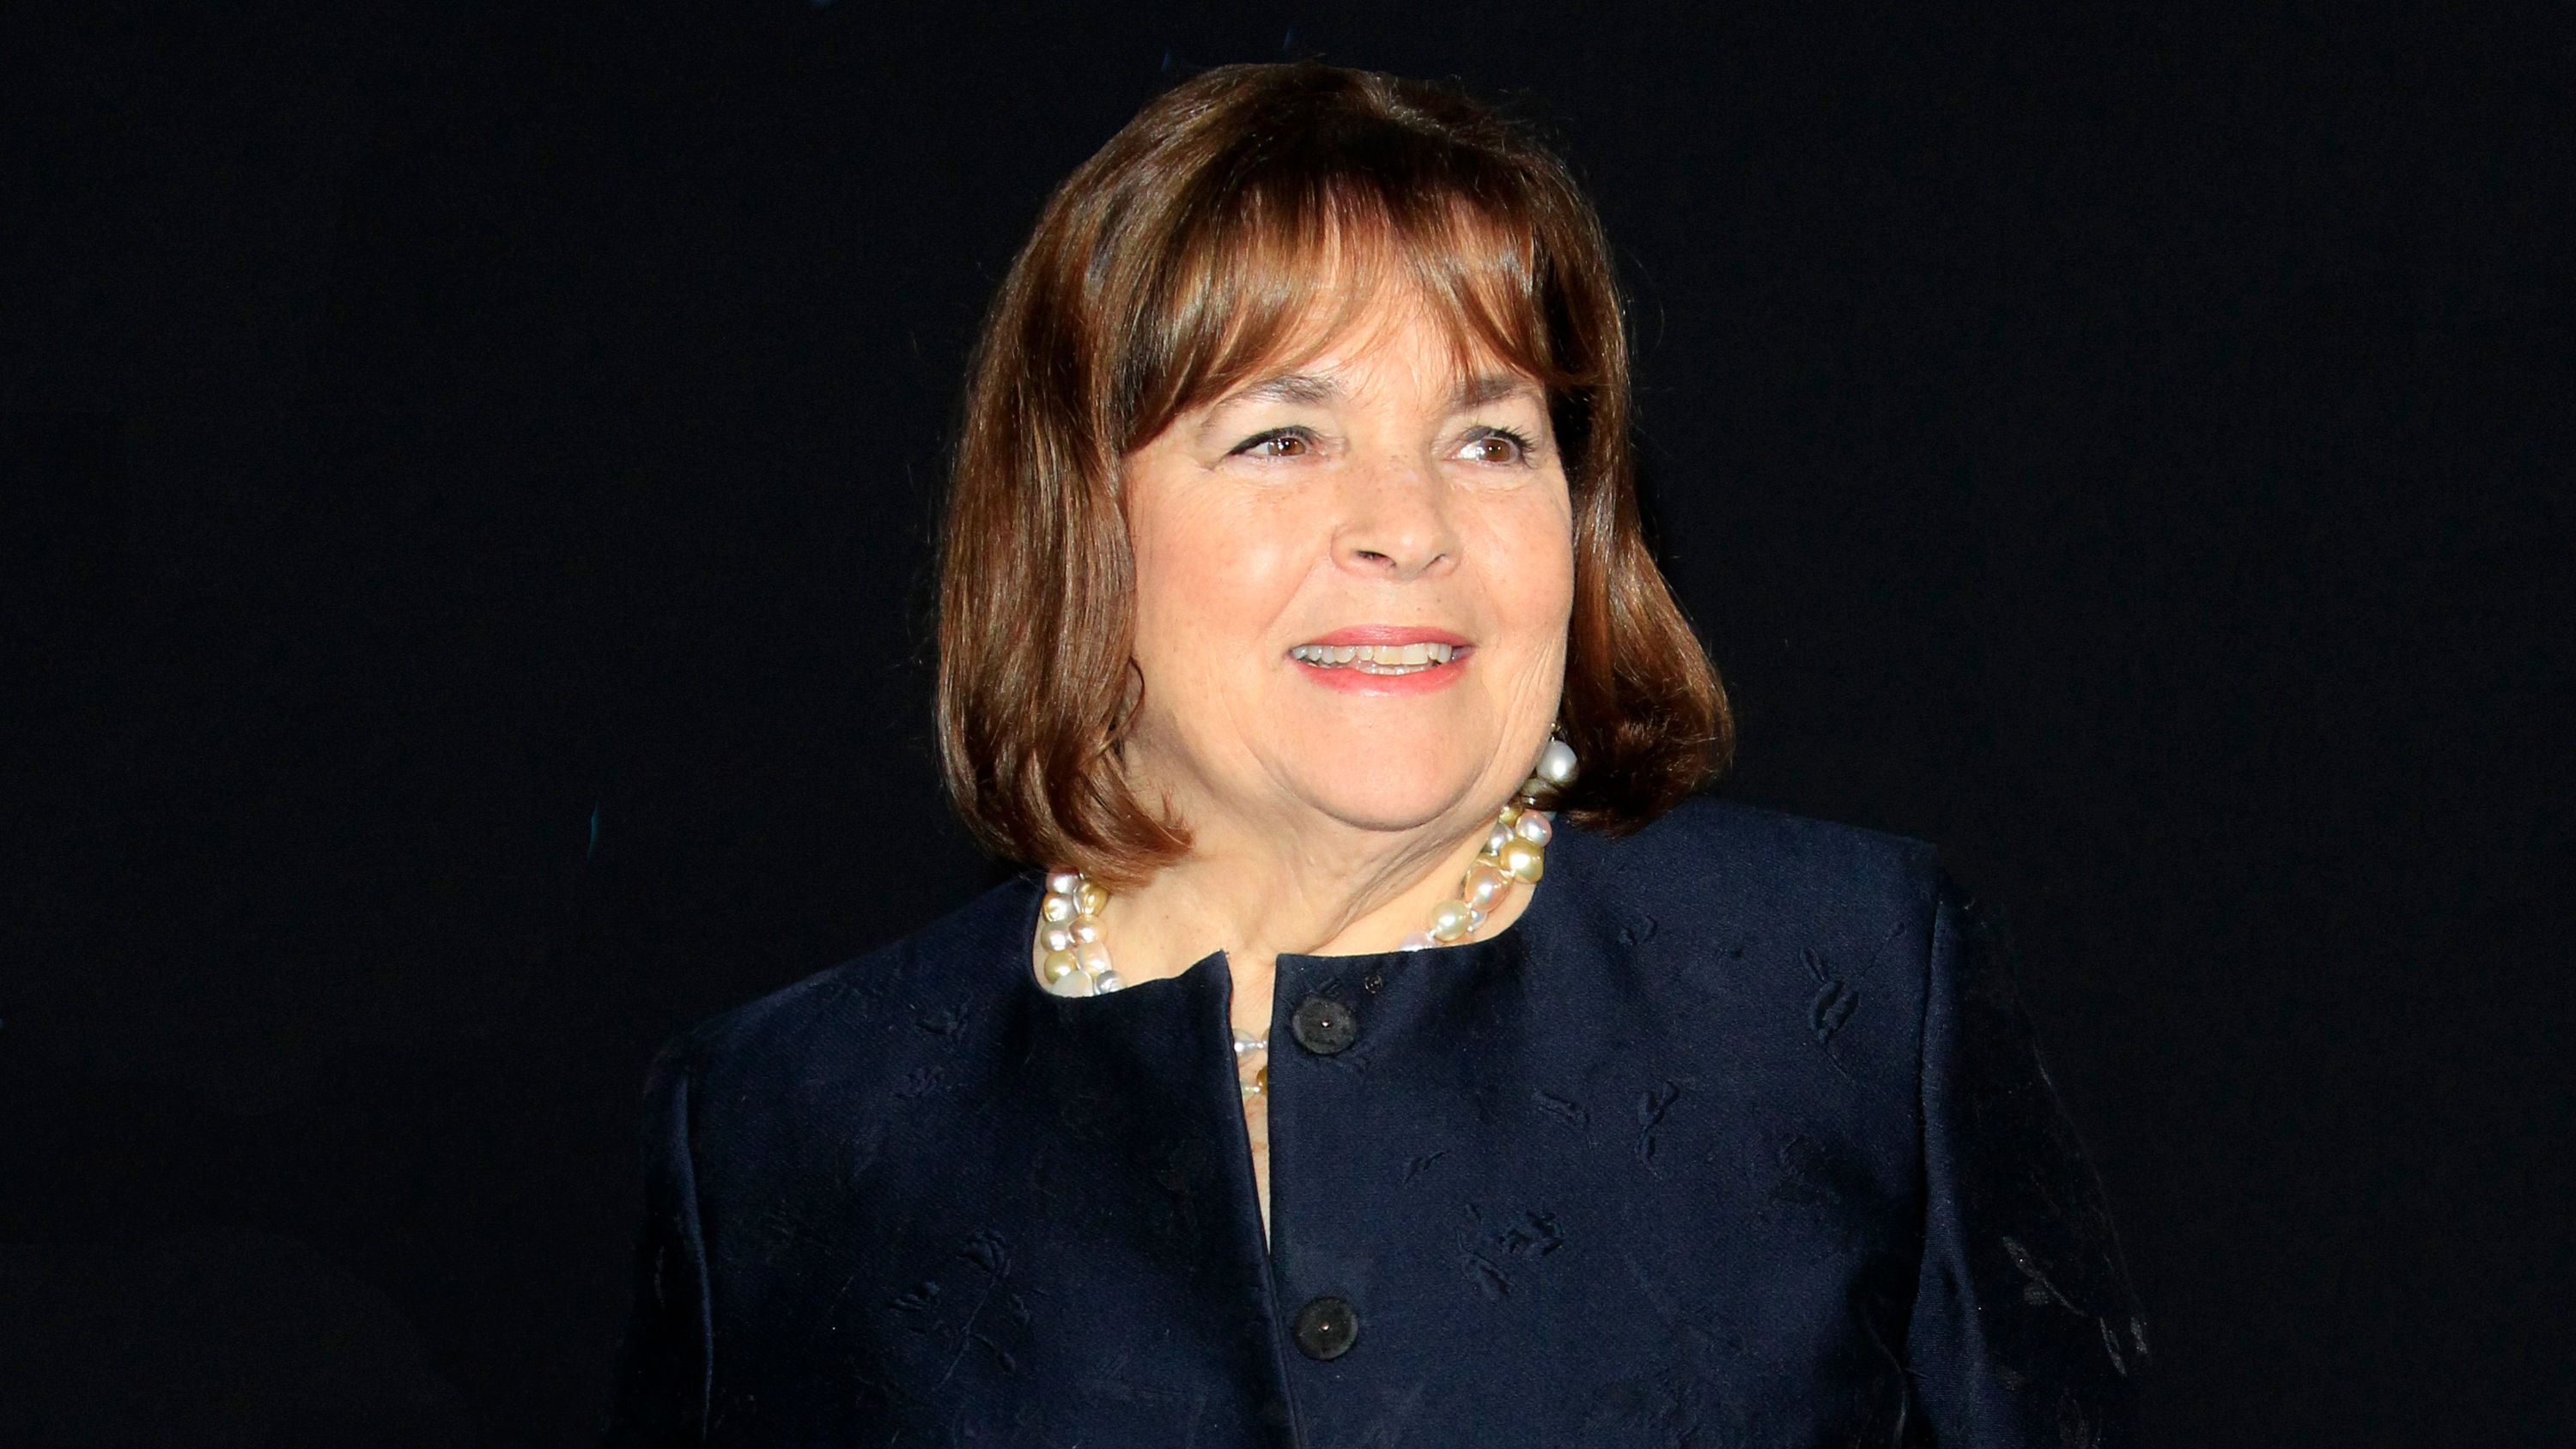 Quarantine hero Ina Garten just made the world's largest cosmo